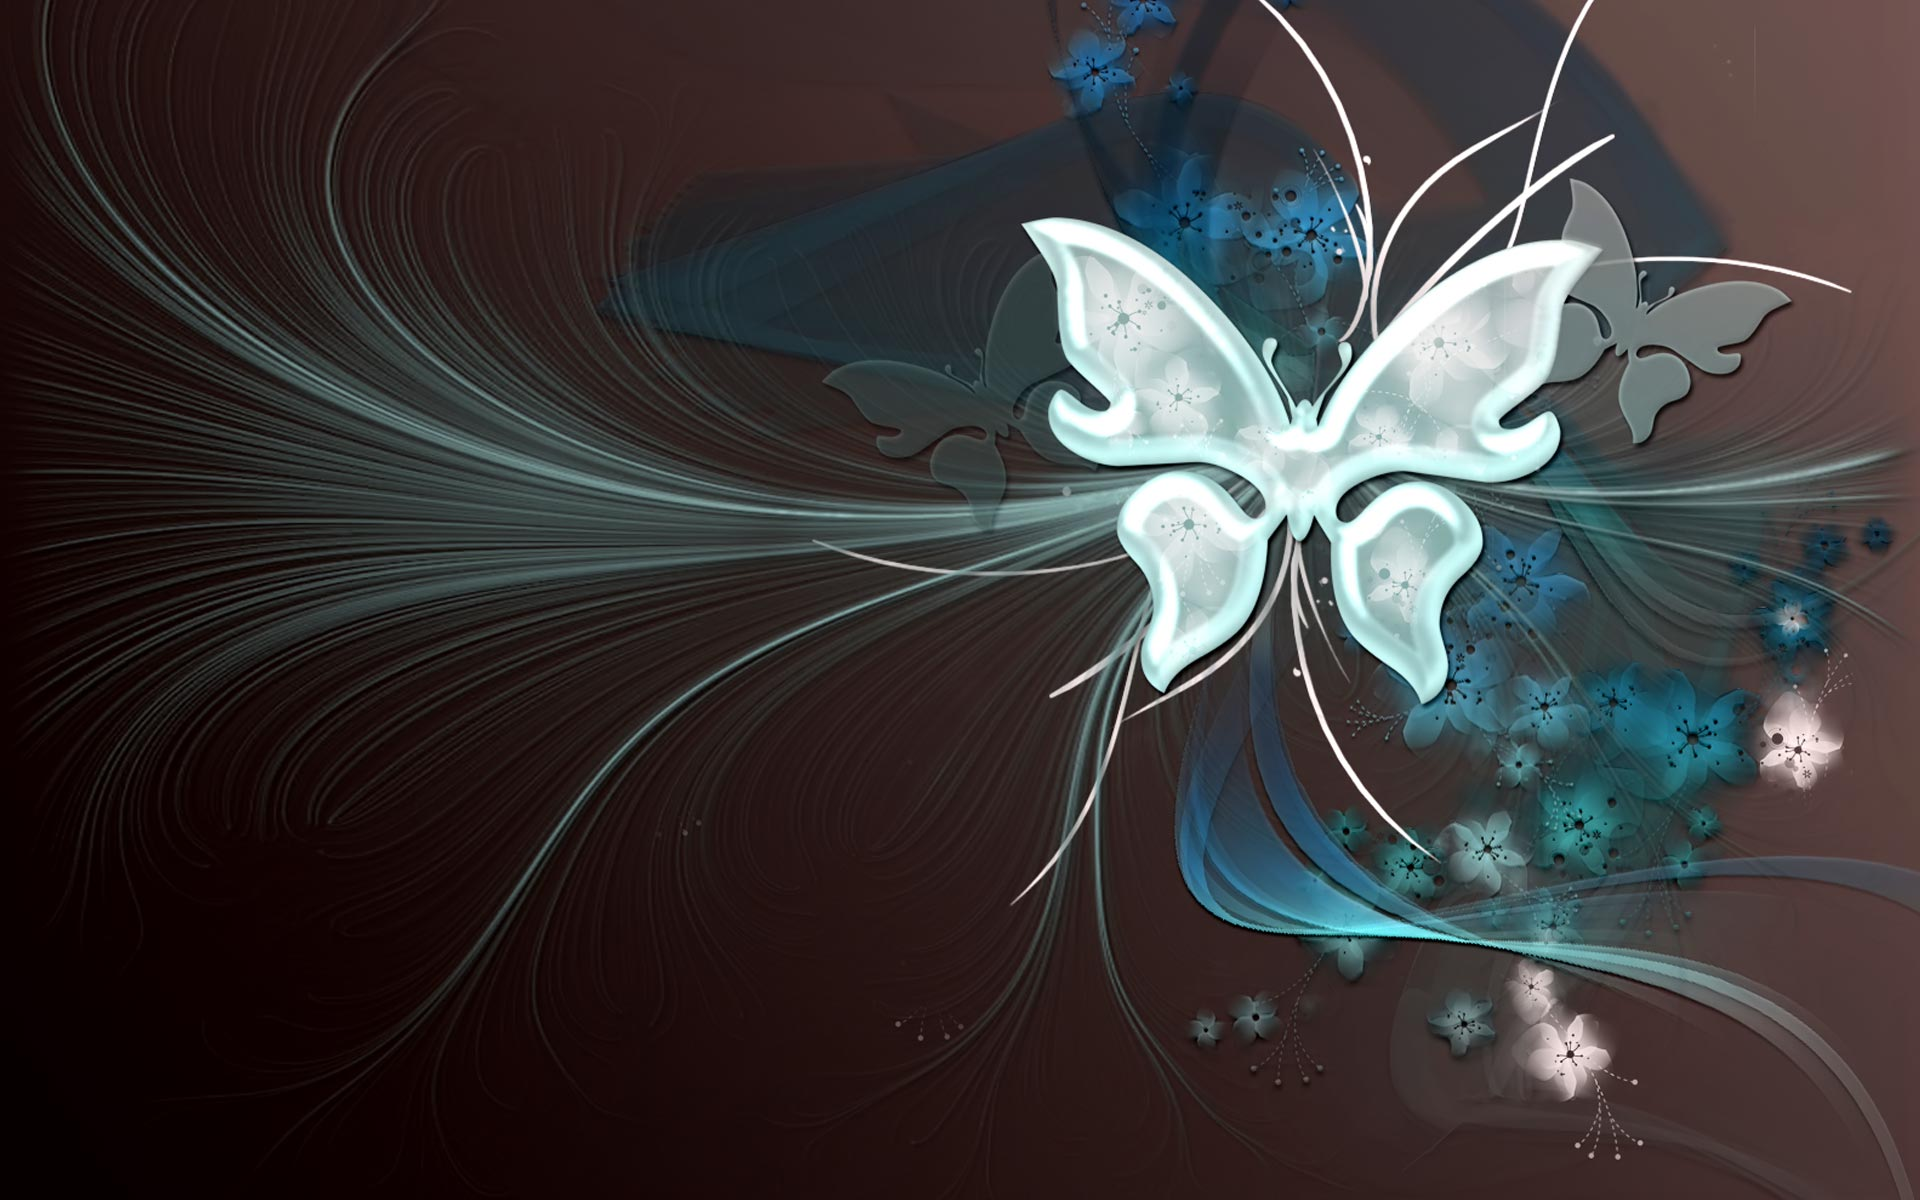 Butterfly vector backgrounds hd Wallpaper High Quality Wallpapers 1920x1200